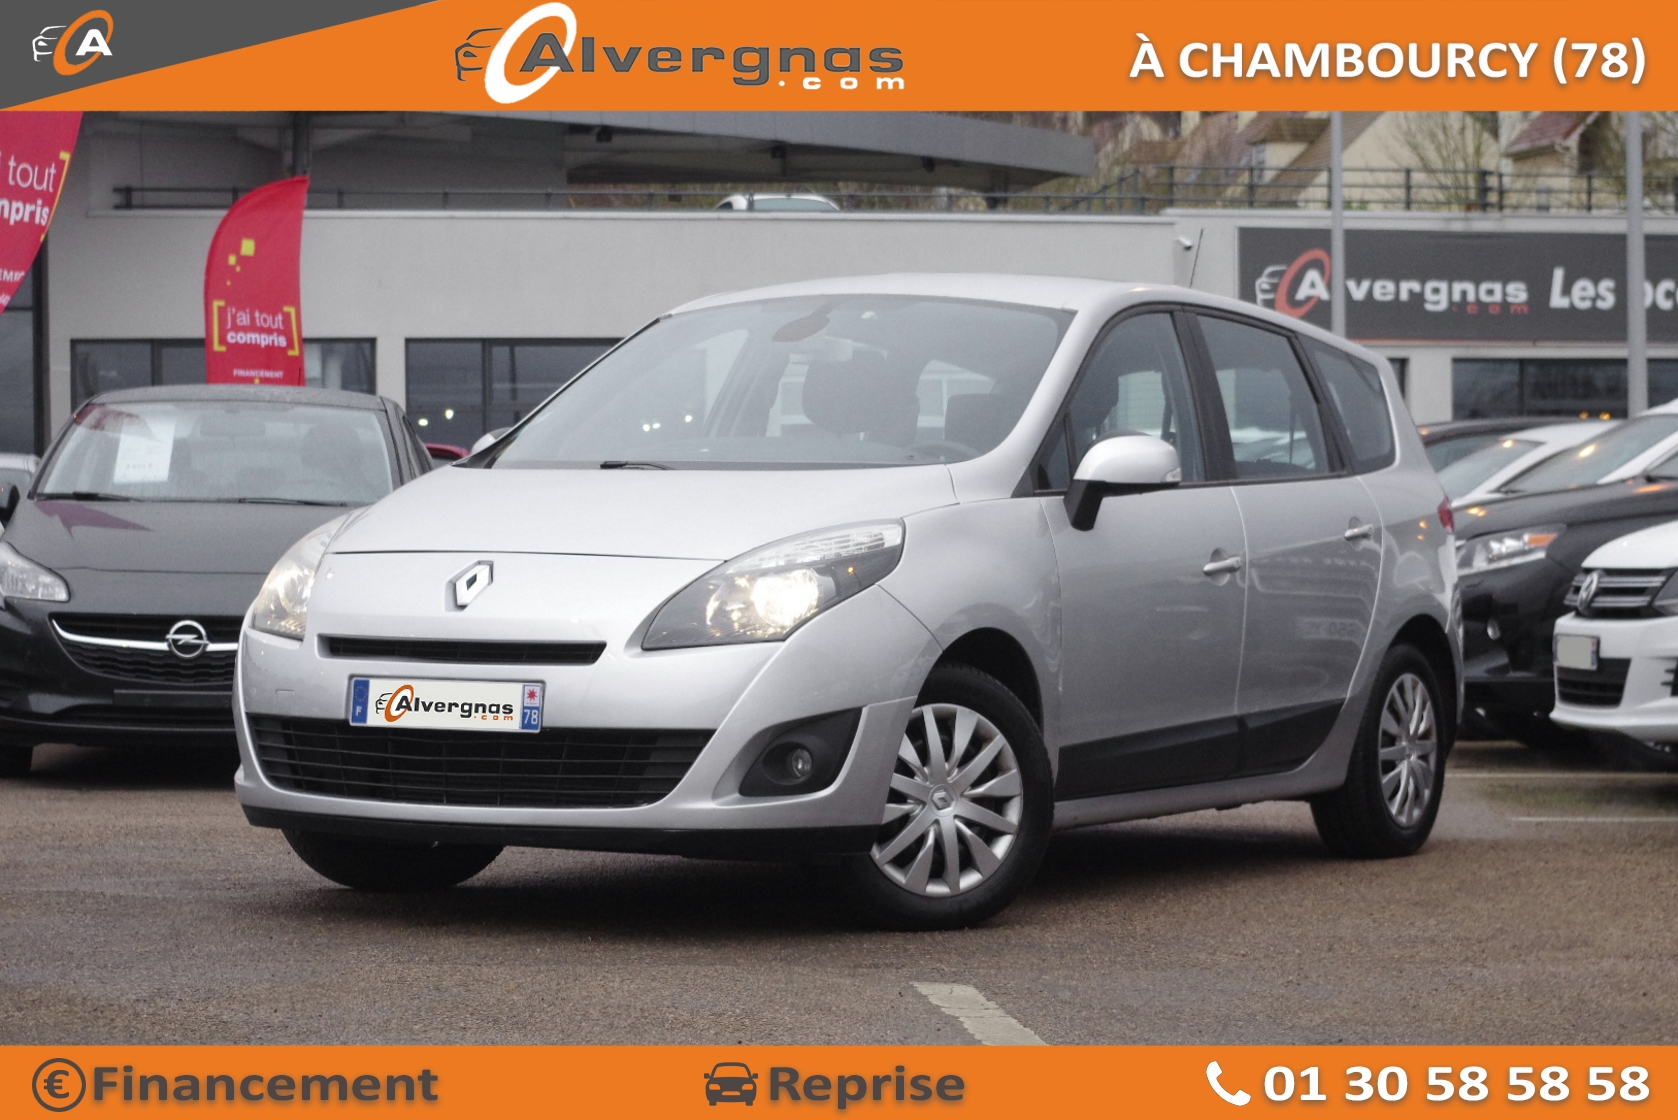 RENAULT GRAND SCENIC d'occasion sur Paris